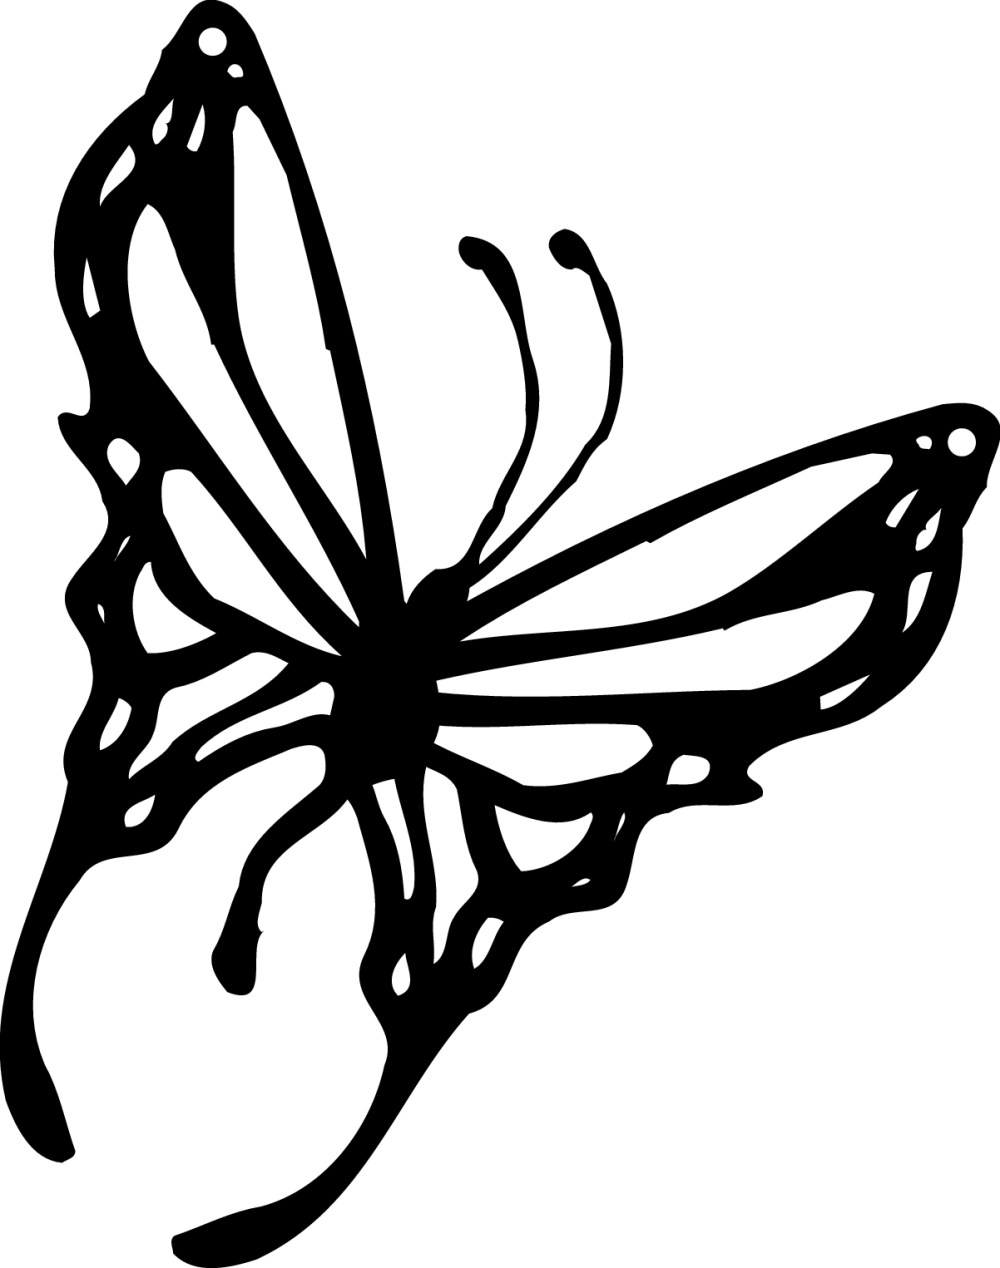 medium resolution of 1202x1525 15 monarch butterfly pictures black and white compilation black